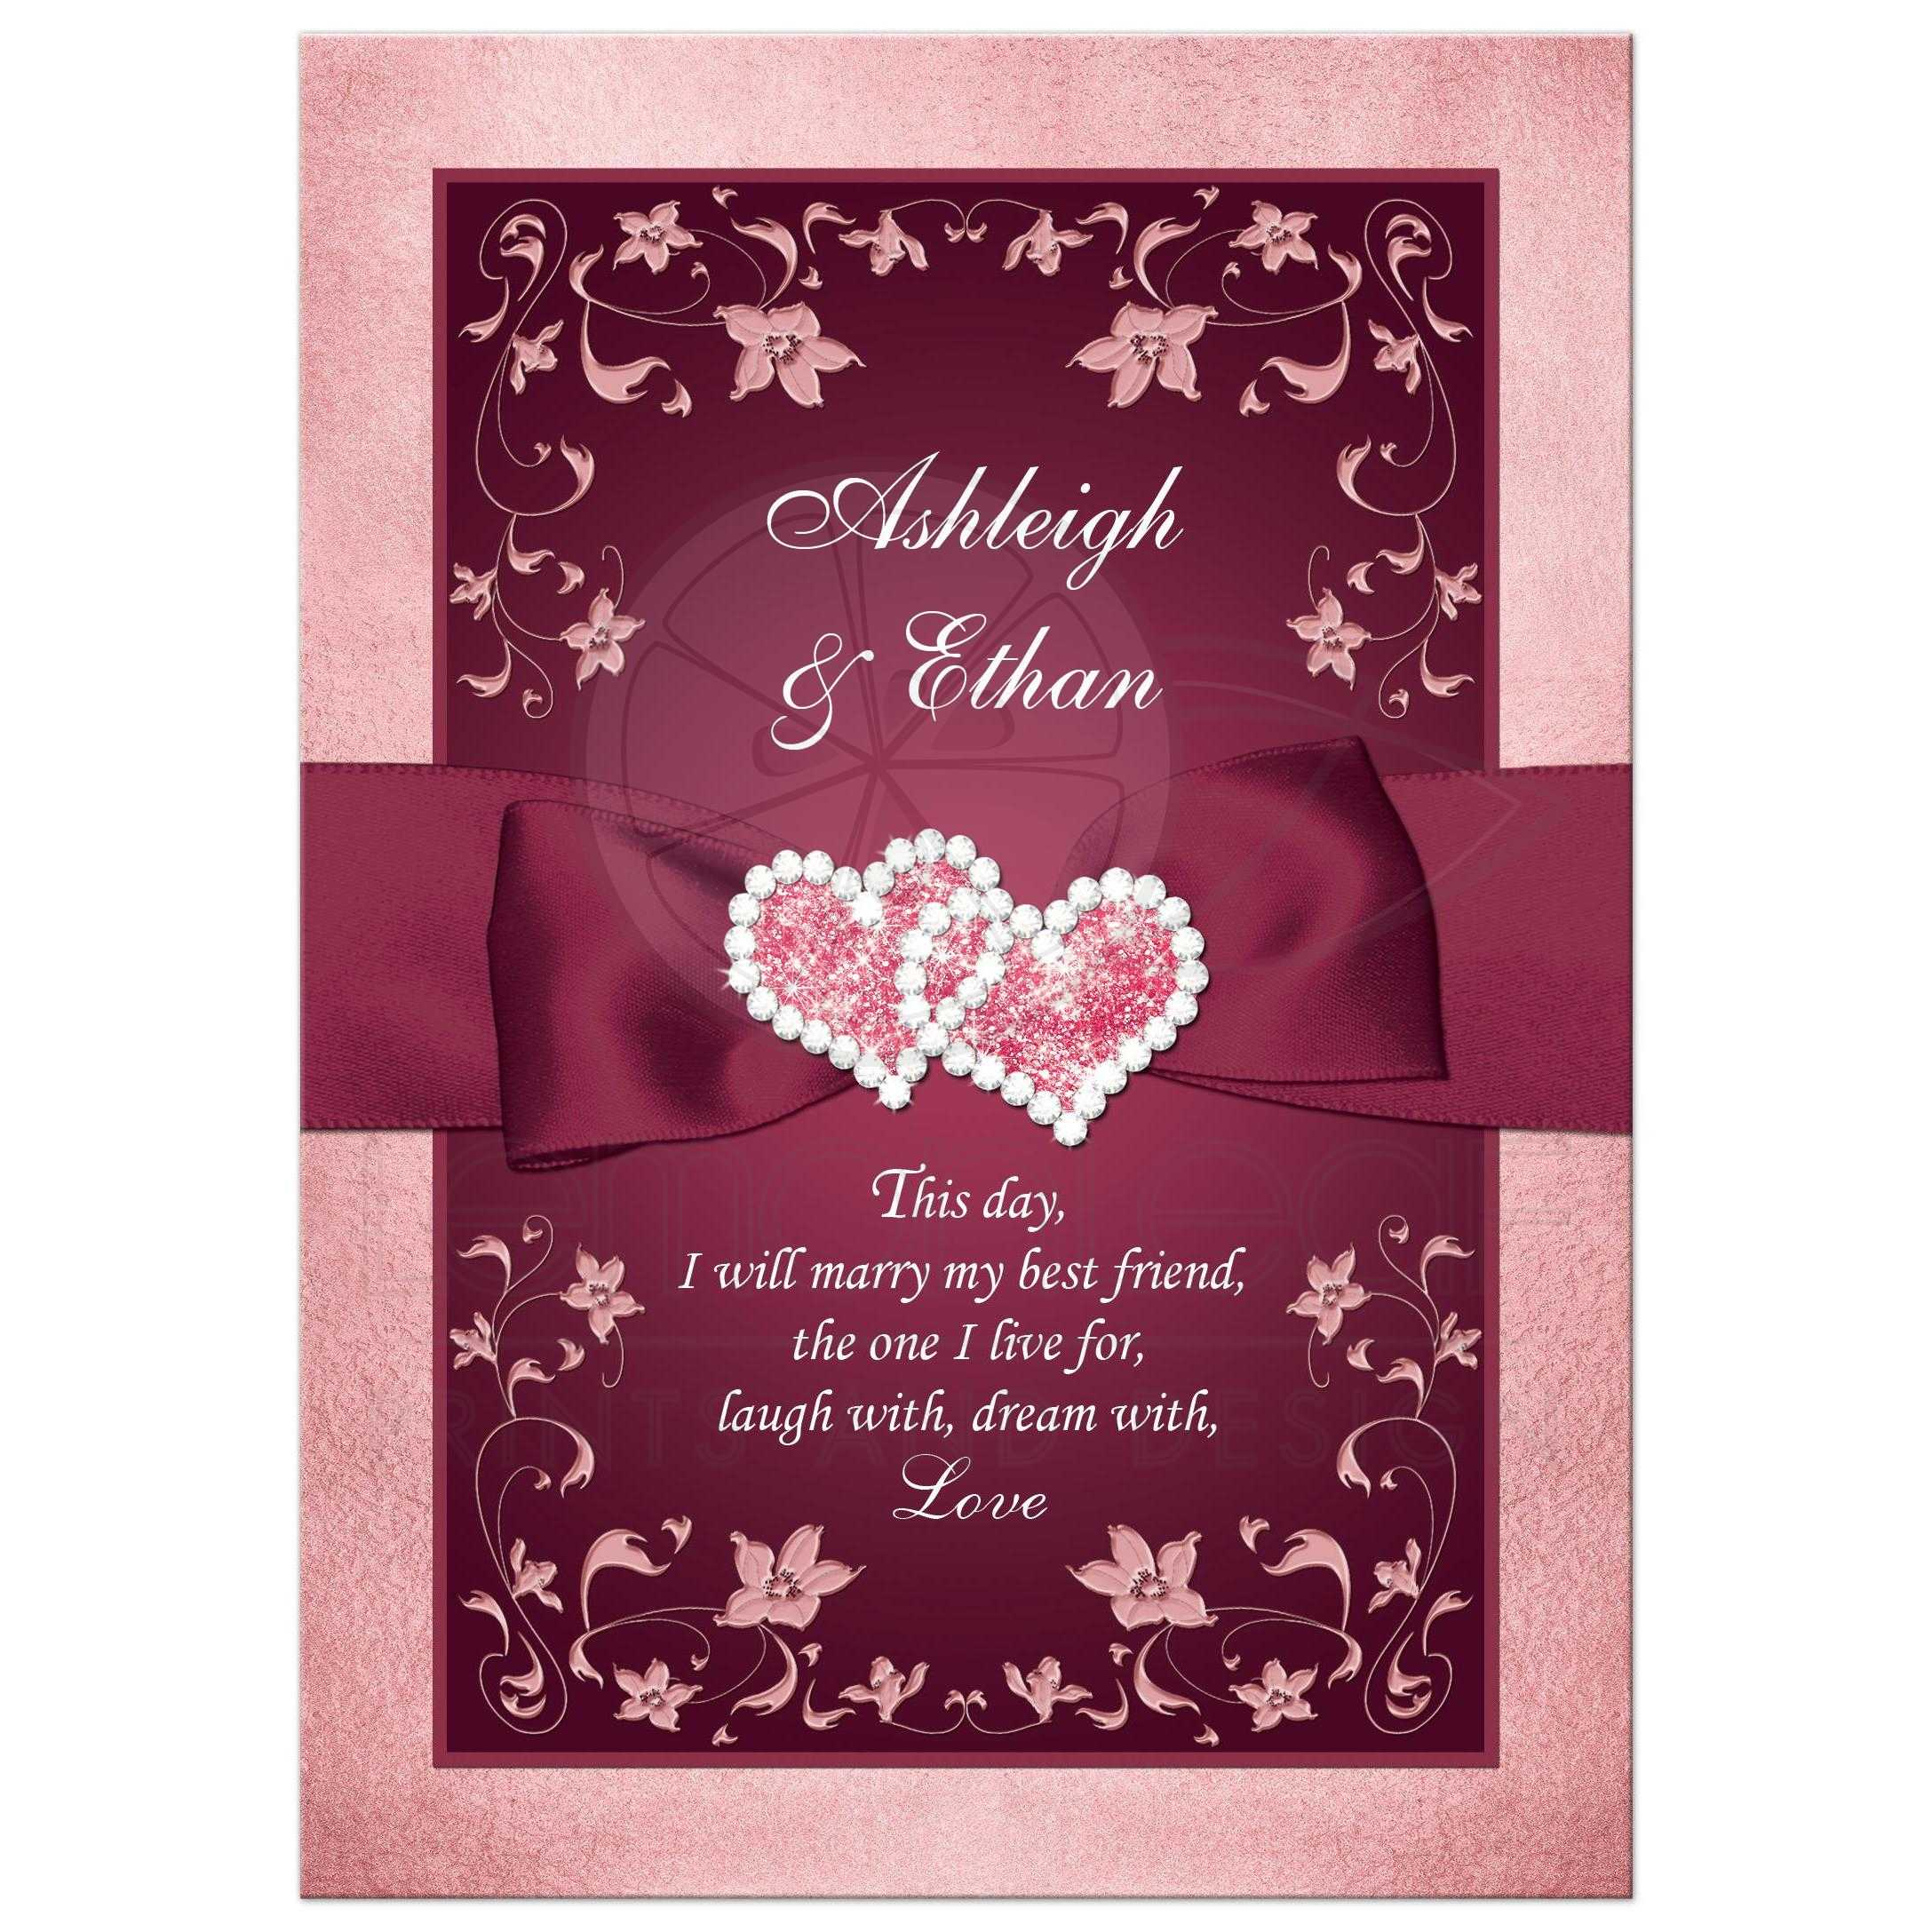 wedding invitation heart - Kubre.euforic.co